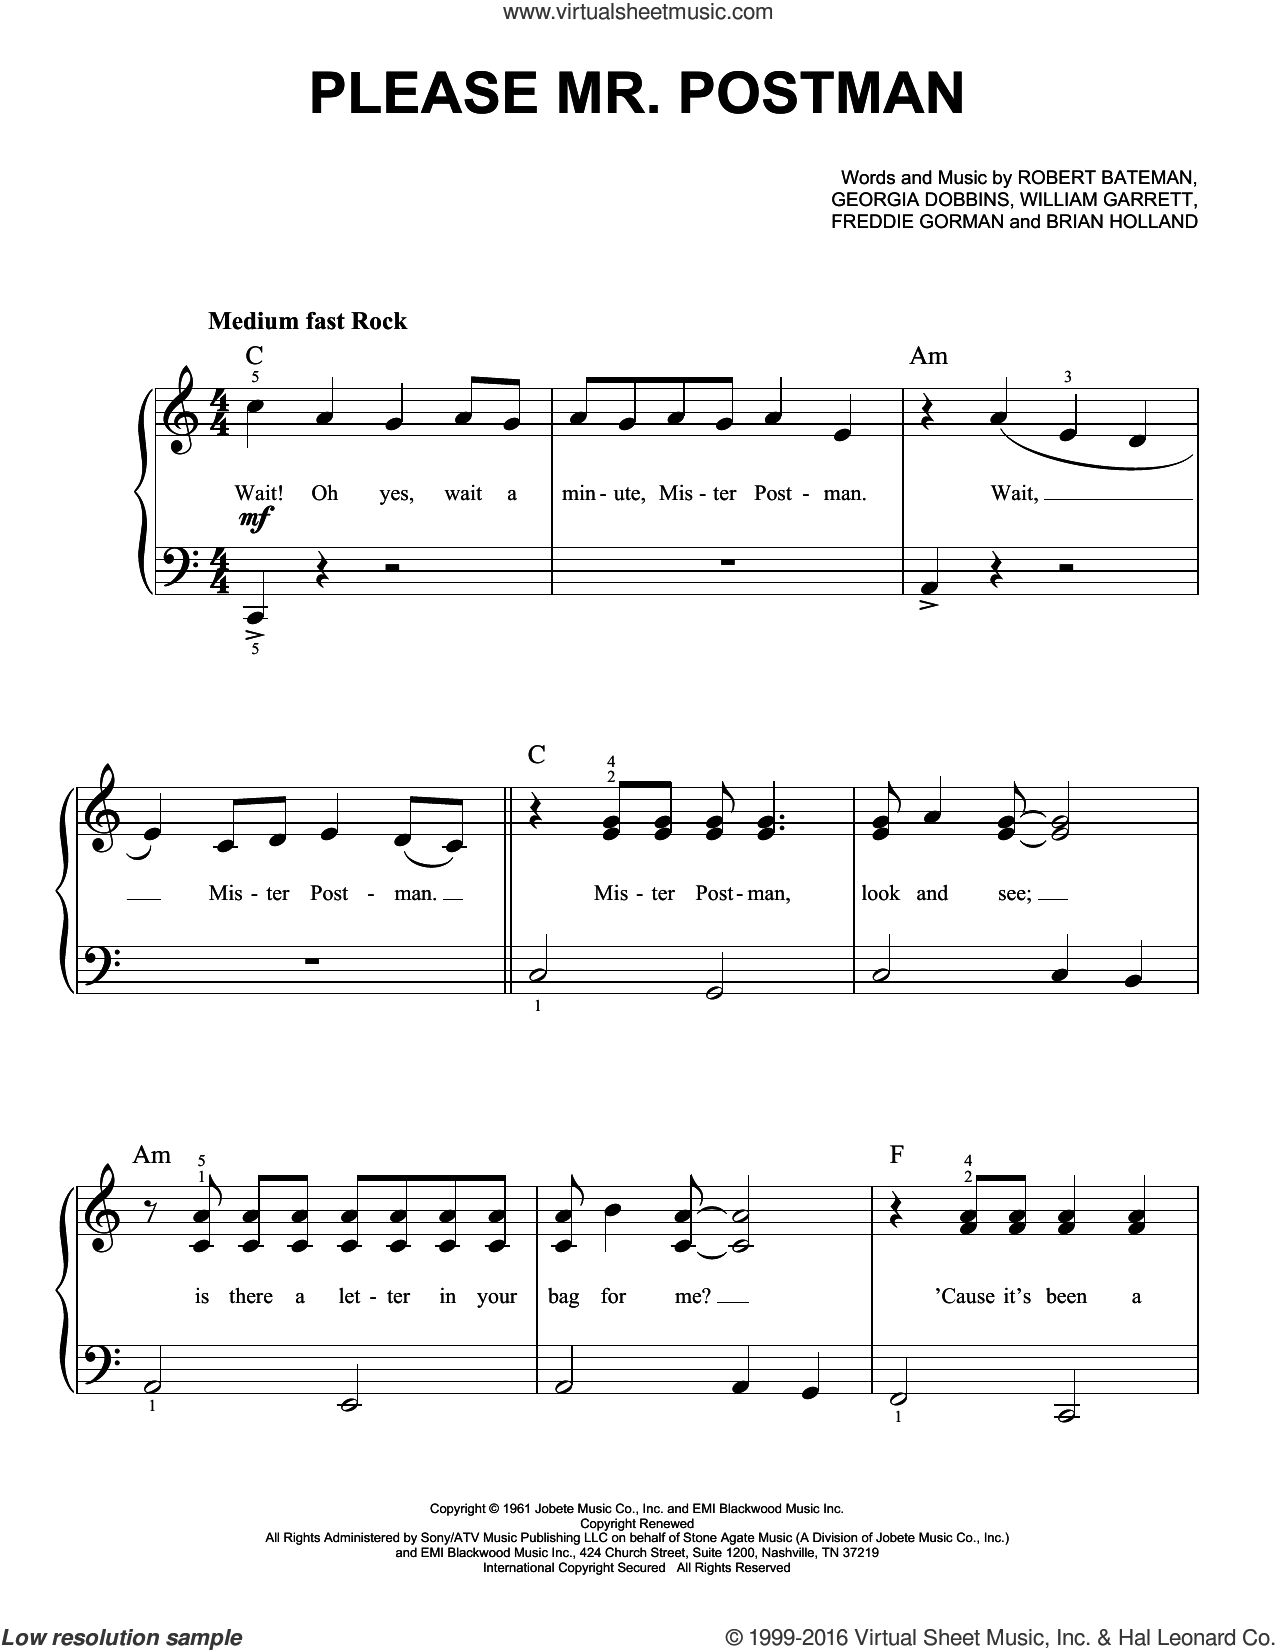 Please Mr. Postman sheet music for piano solo by The Marvelettes, Carpenters, The Beatles, Brian Holland, Freddie Gorman, Georgia Dobbins, Robert Bateman and William Garrett, easy skill level